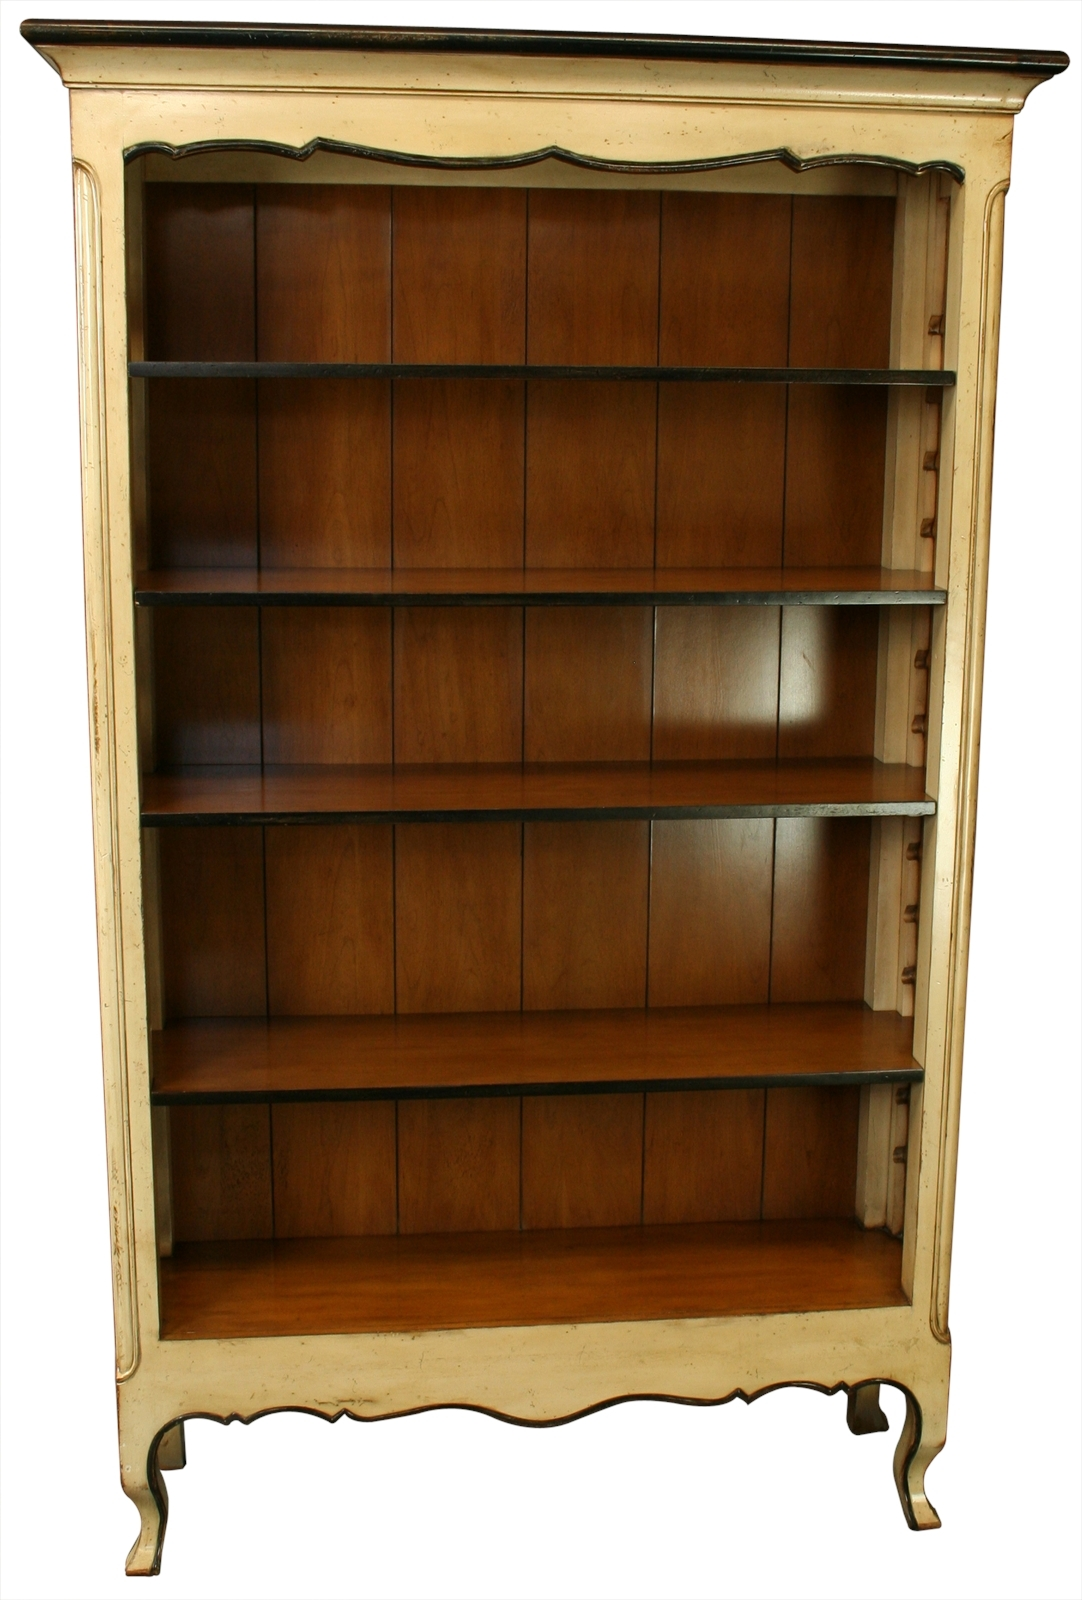 New French Country Bookcase In Cherry Maple Adjustable Shelves